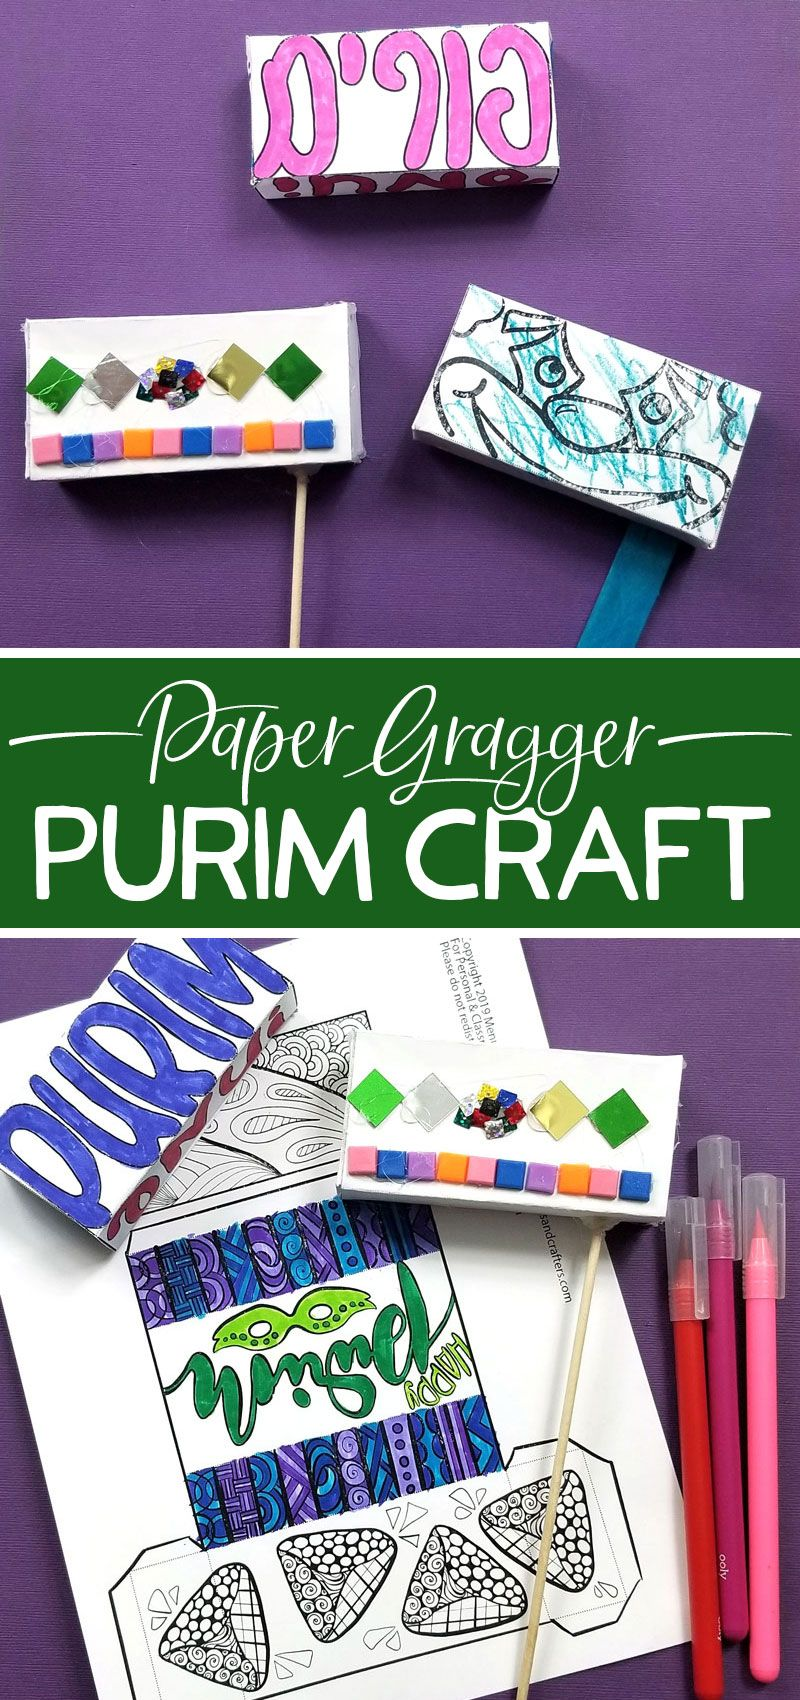 22++ Diy paper crafts for adults information